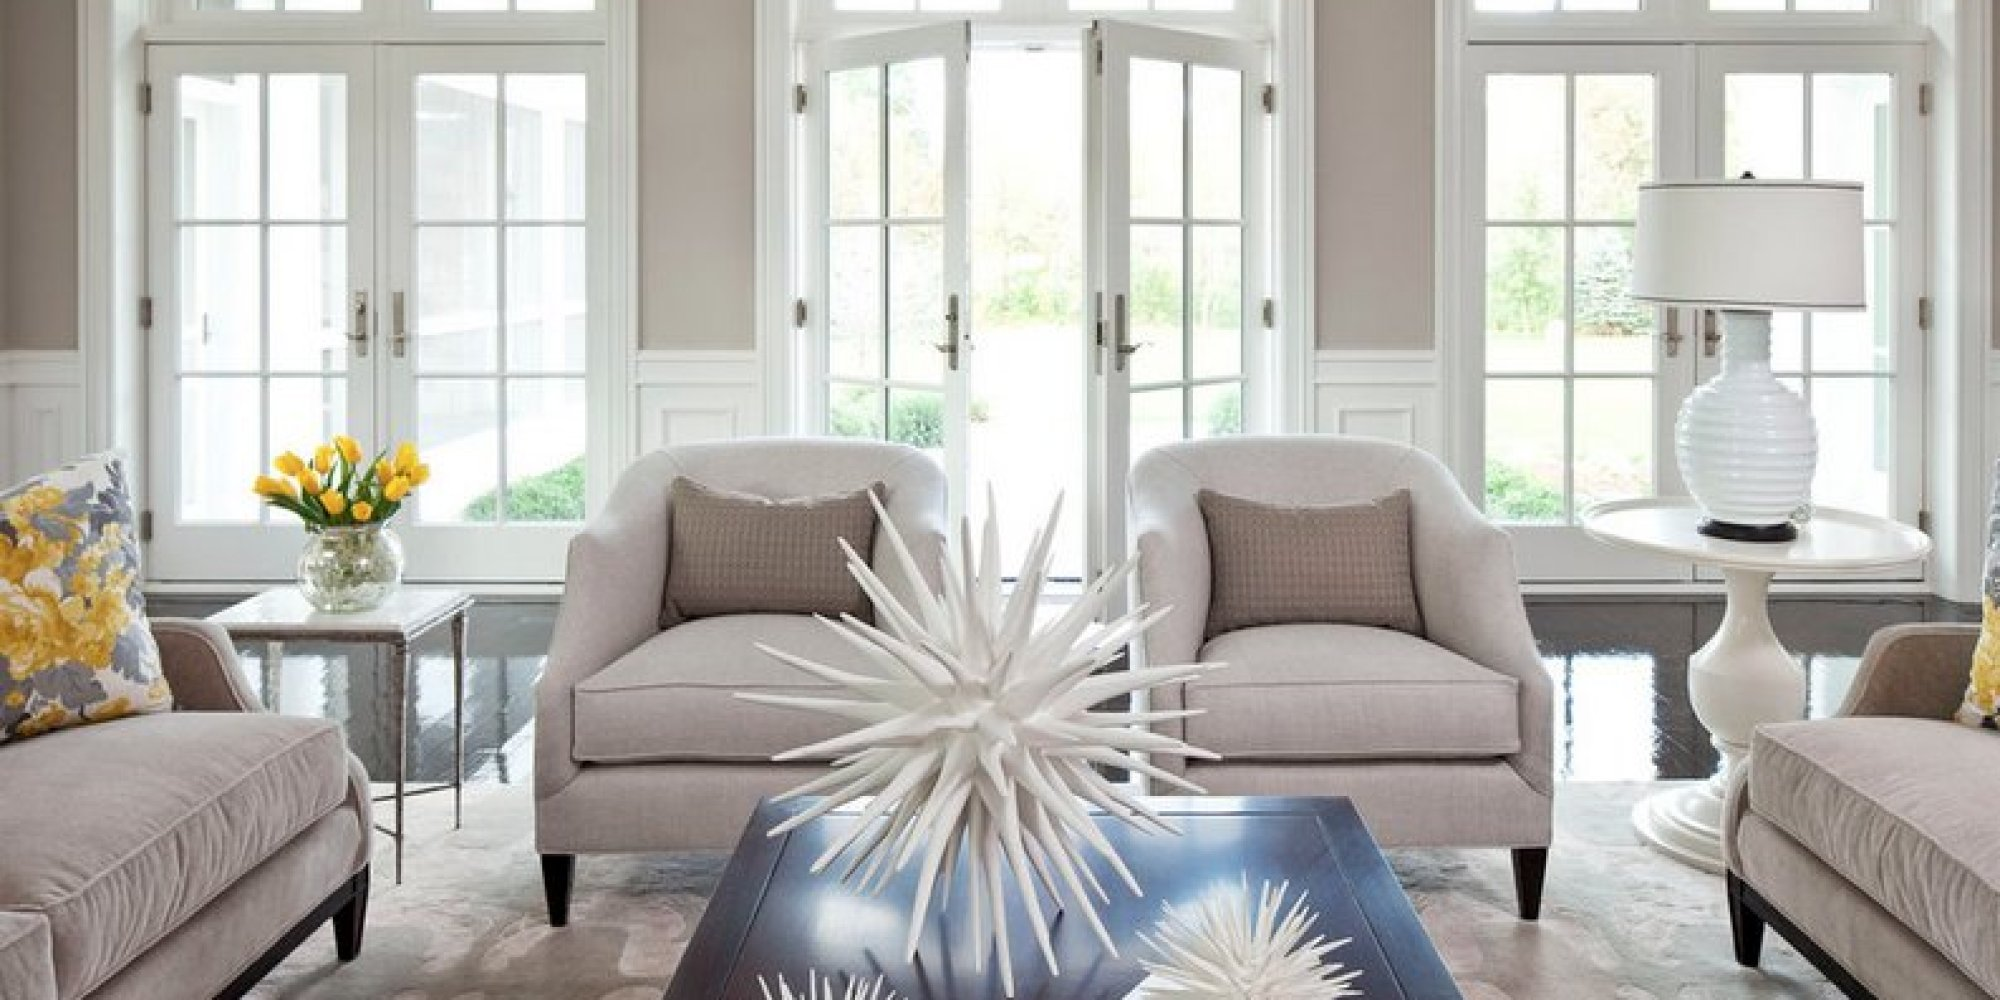 The 8 Best Neutral Paint Colors That ll Work In Any Home  No Matter     The 8 Best Neutral Paint Colors That ll Work In Any Home  No Matter The  Style  PHOTOS    HuffPost